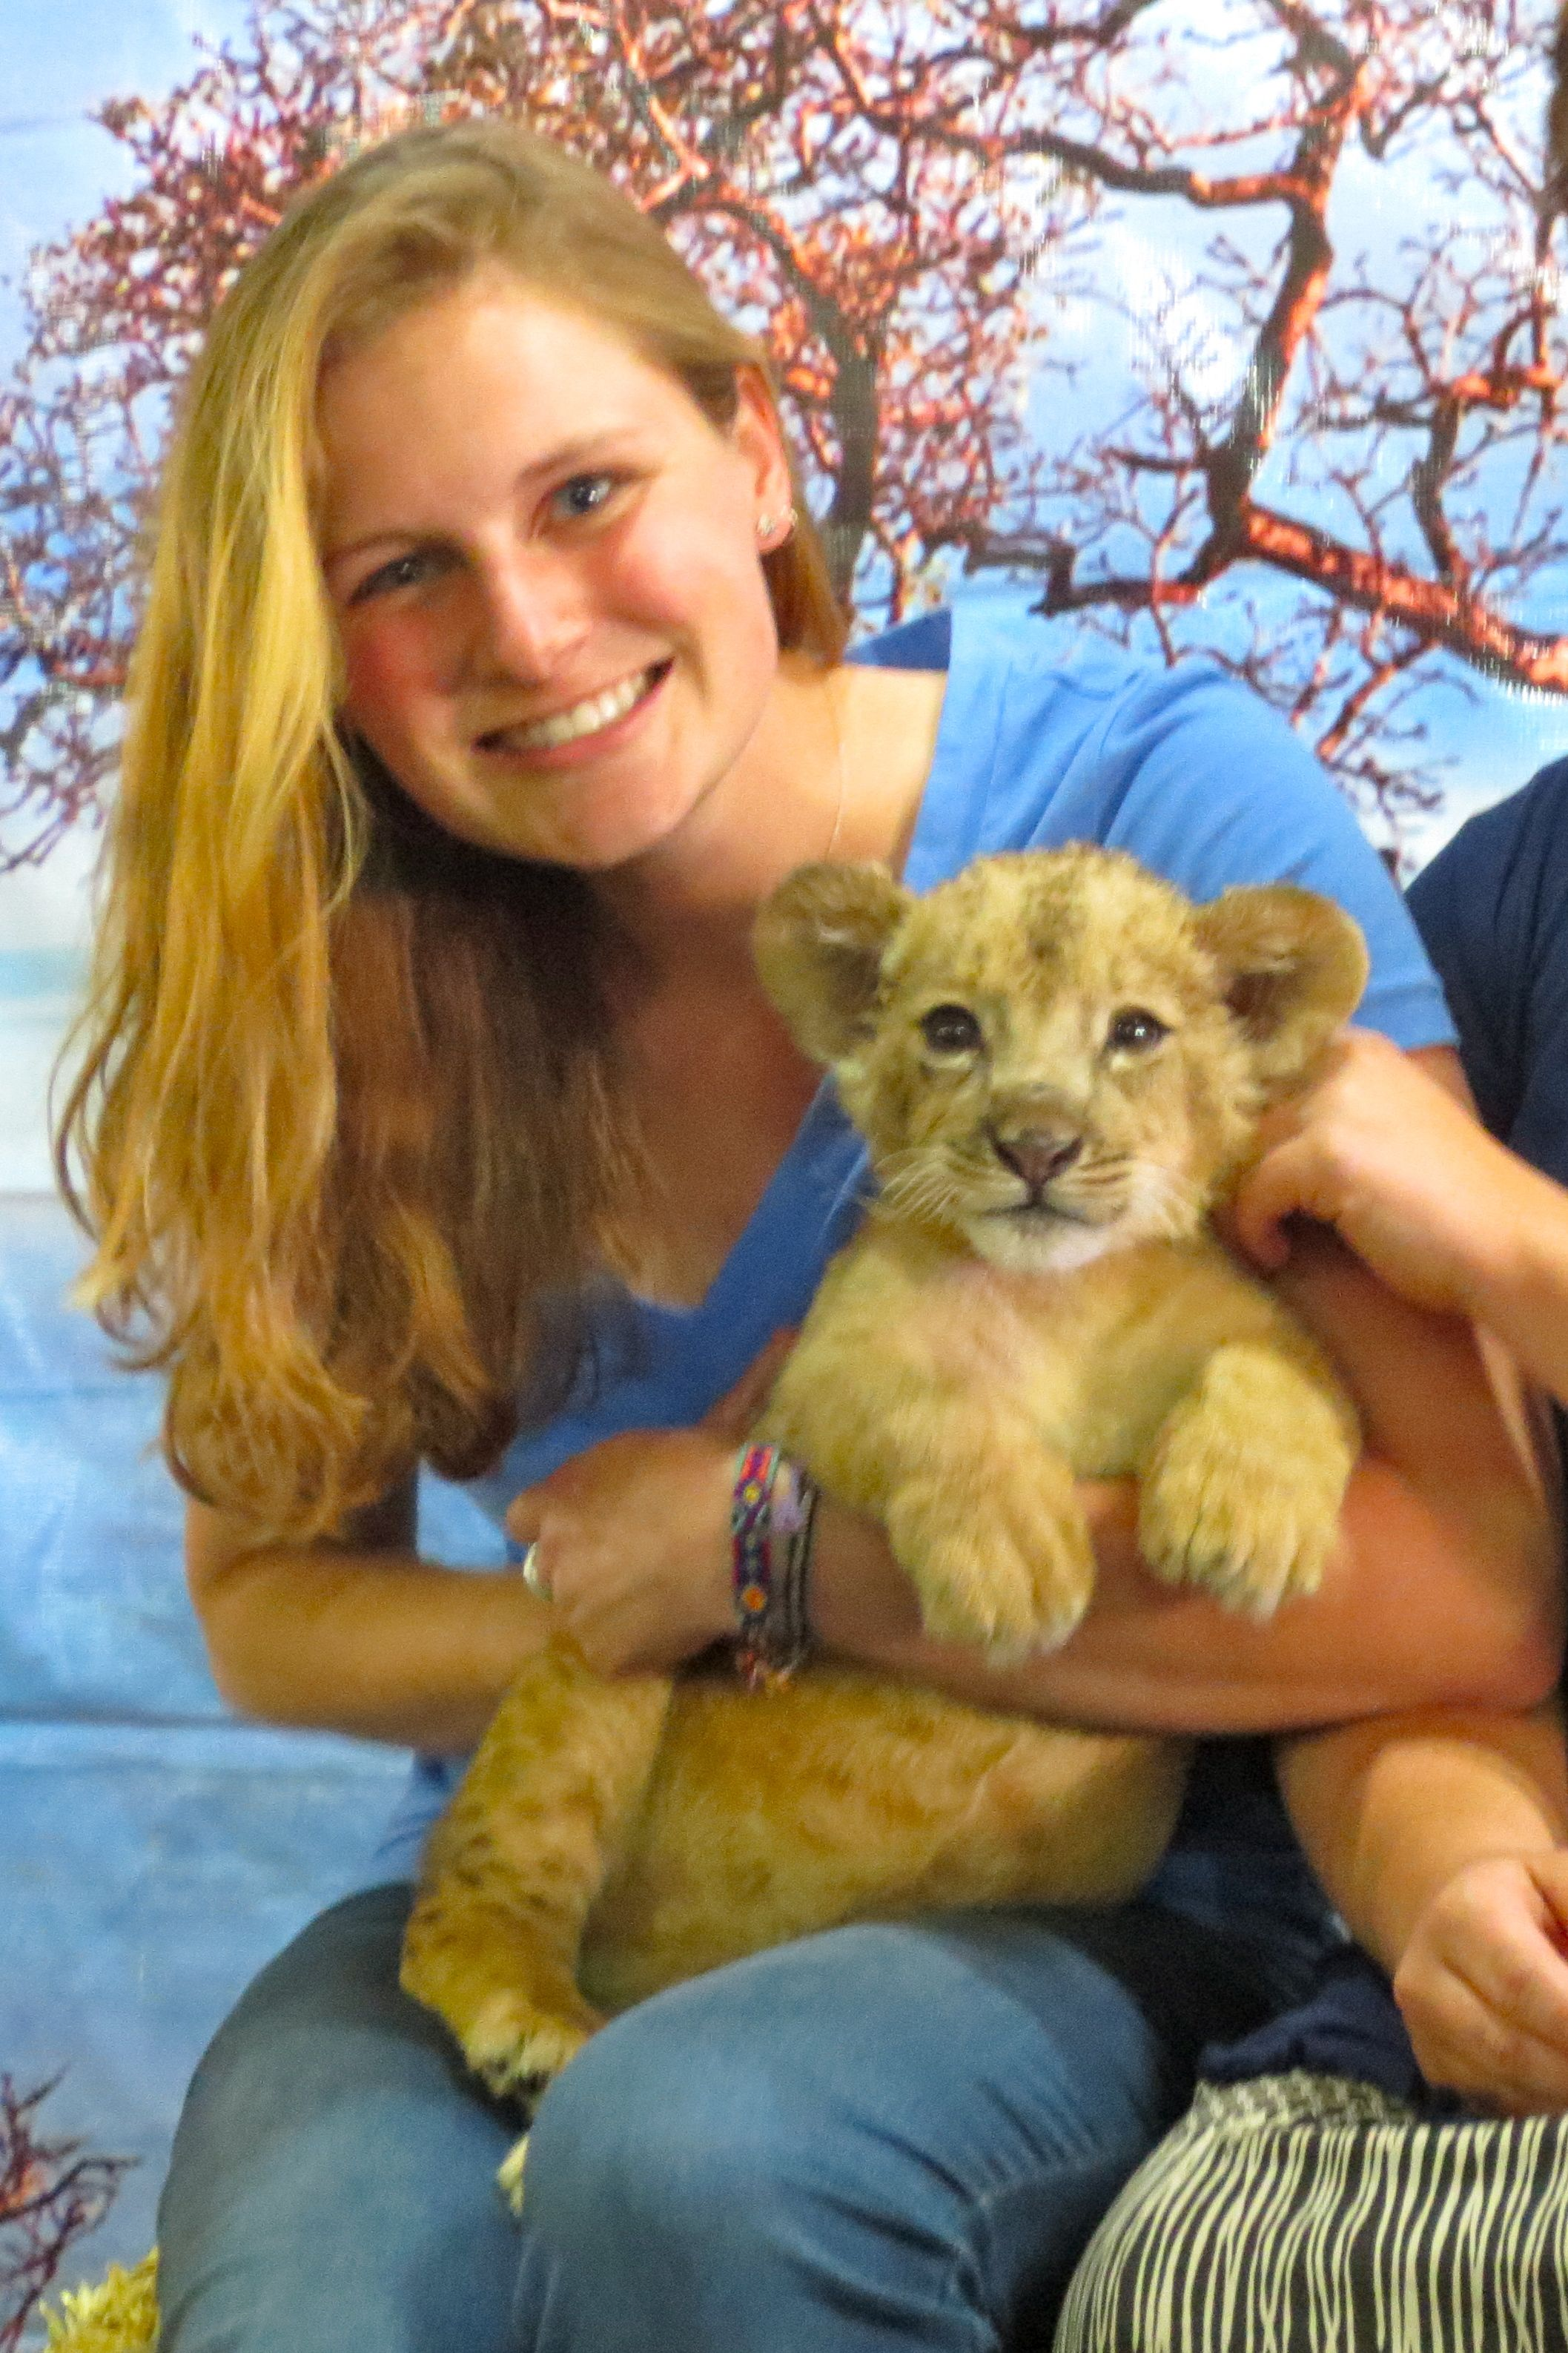 Holding a lion.